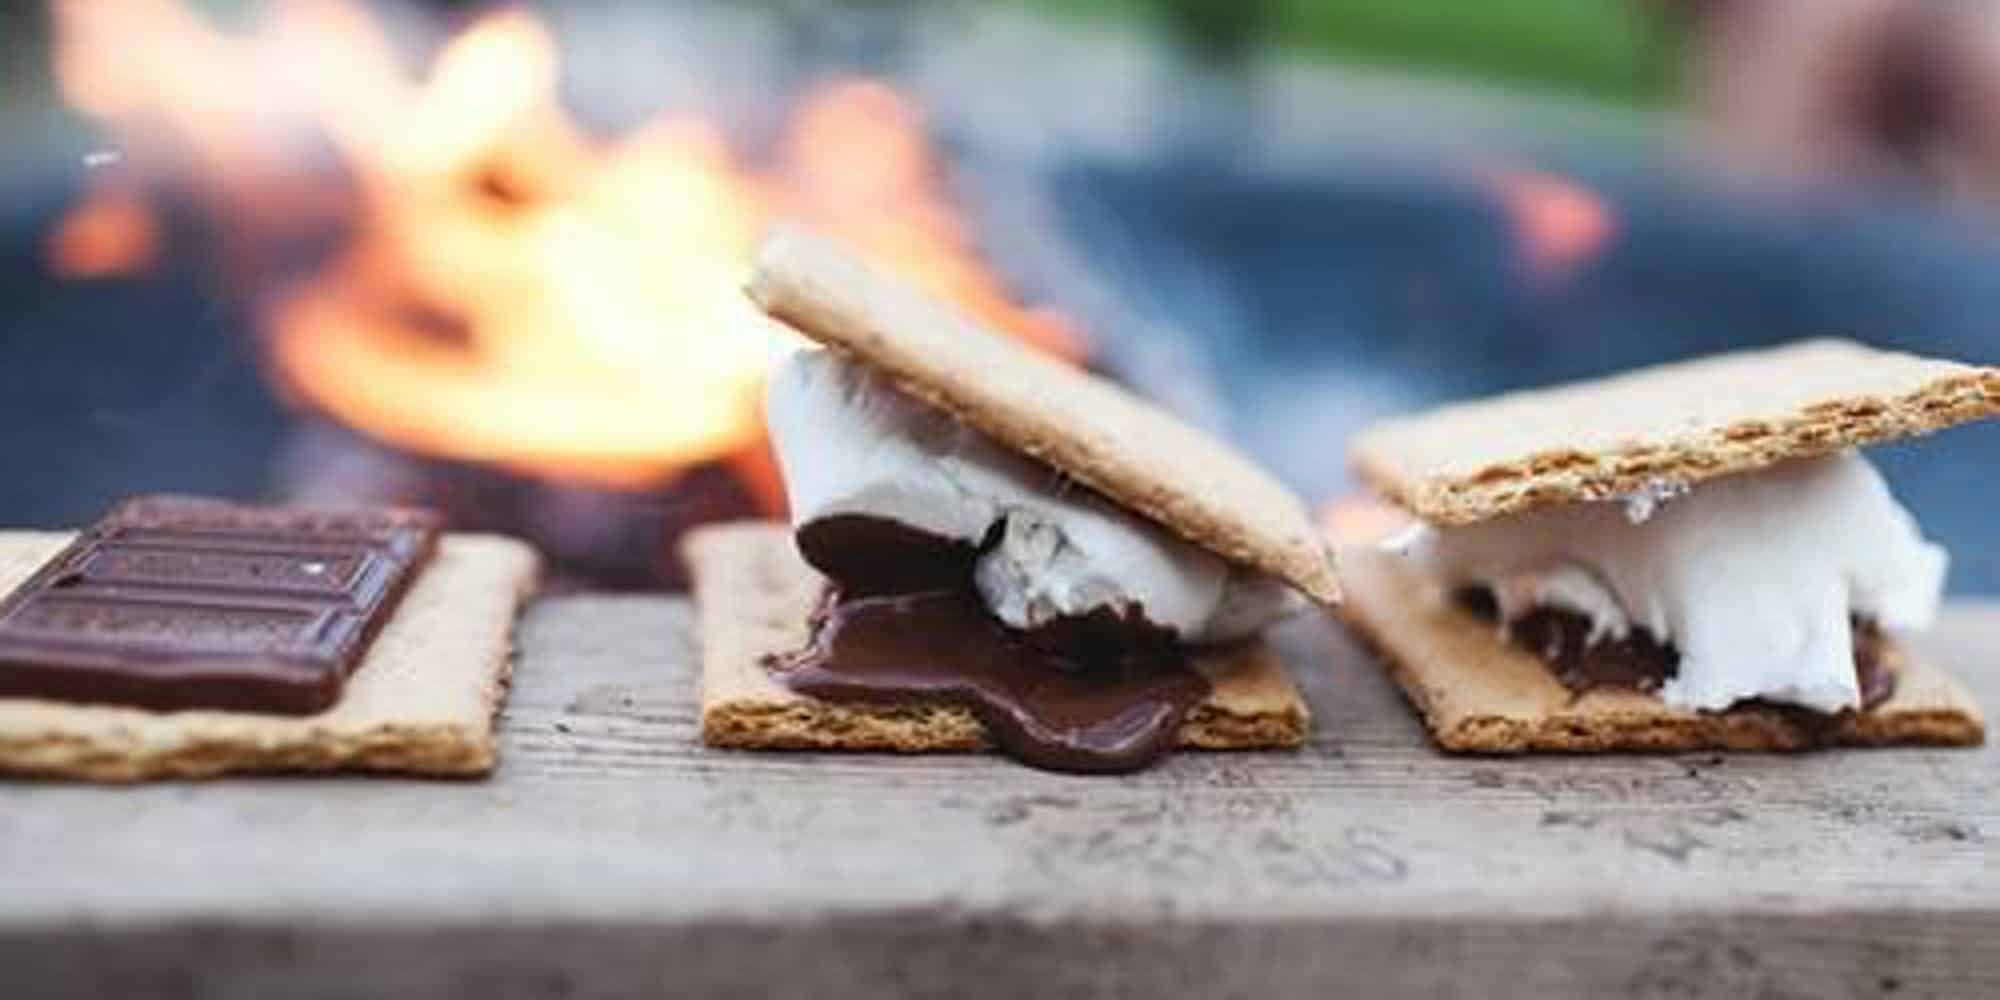 Picture of S'more sitting on a bench infront of a fire.